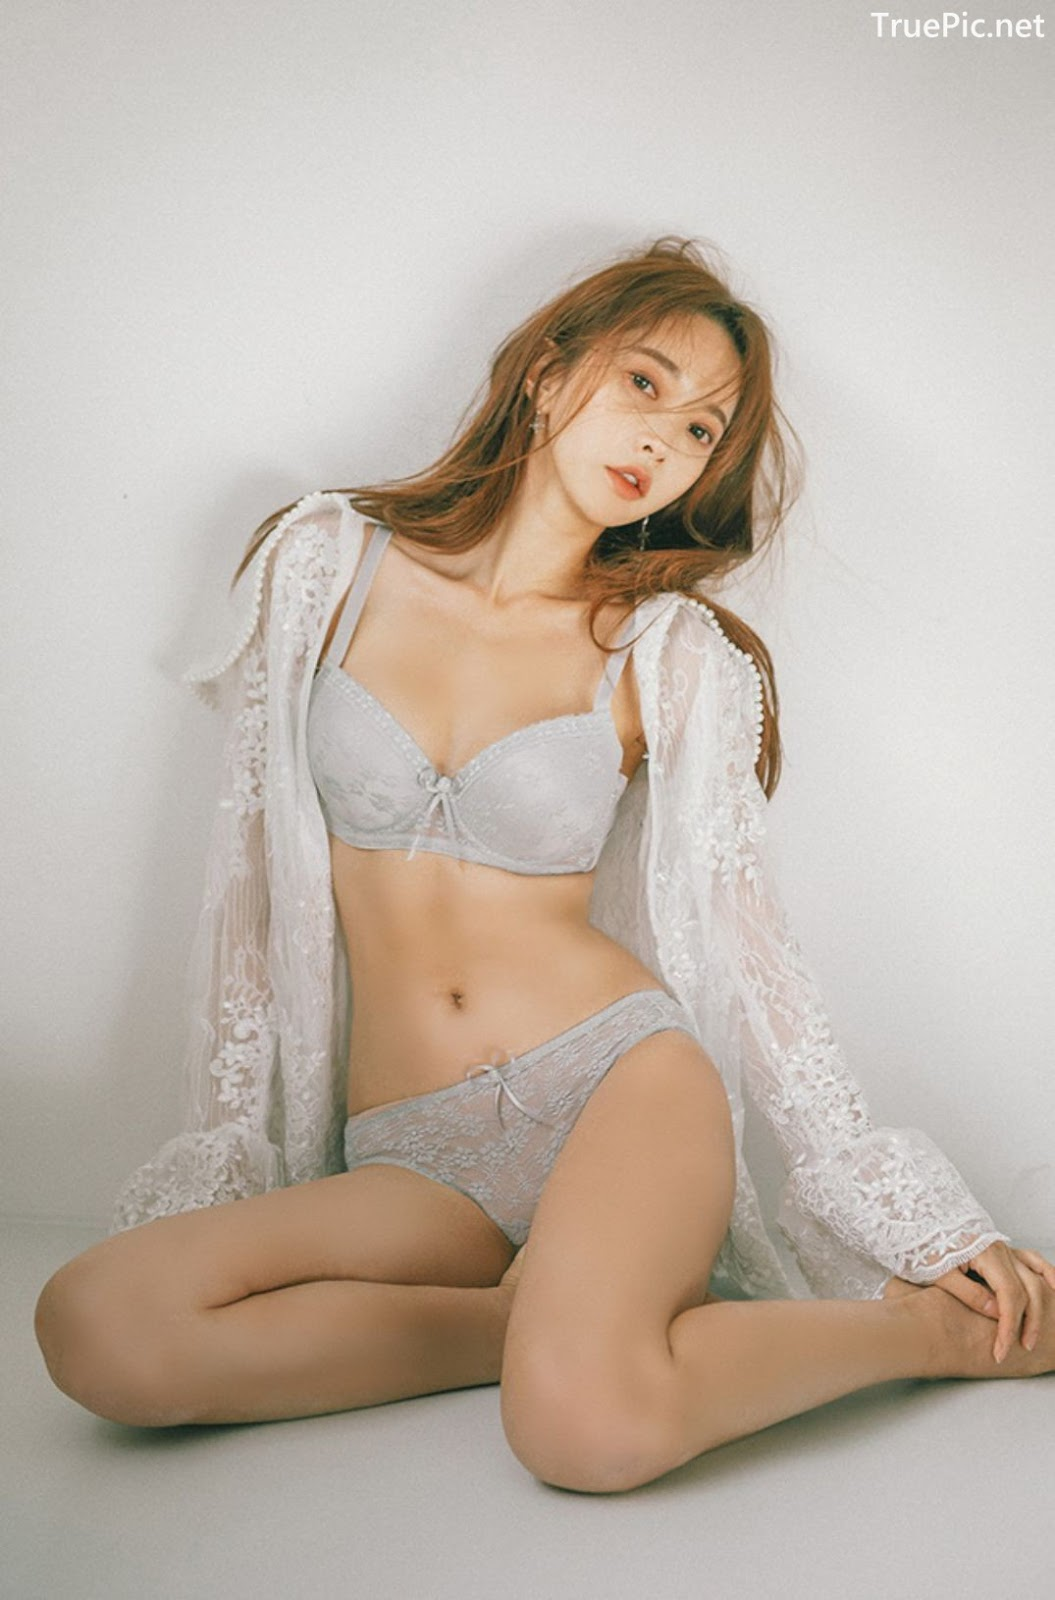 Image Korean Fashion Model - Park Soo Yeon - Light Grey and White Lingerie - TruePic.net - Picture-8